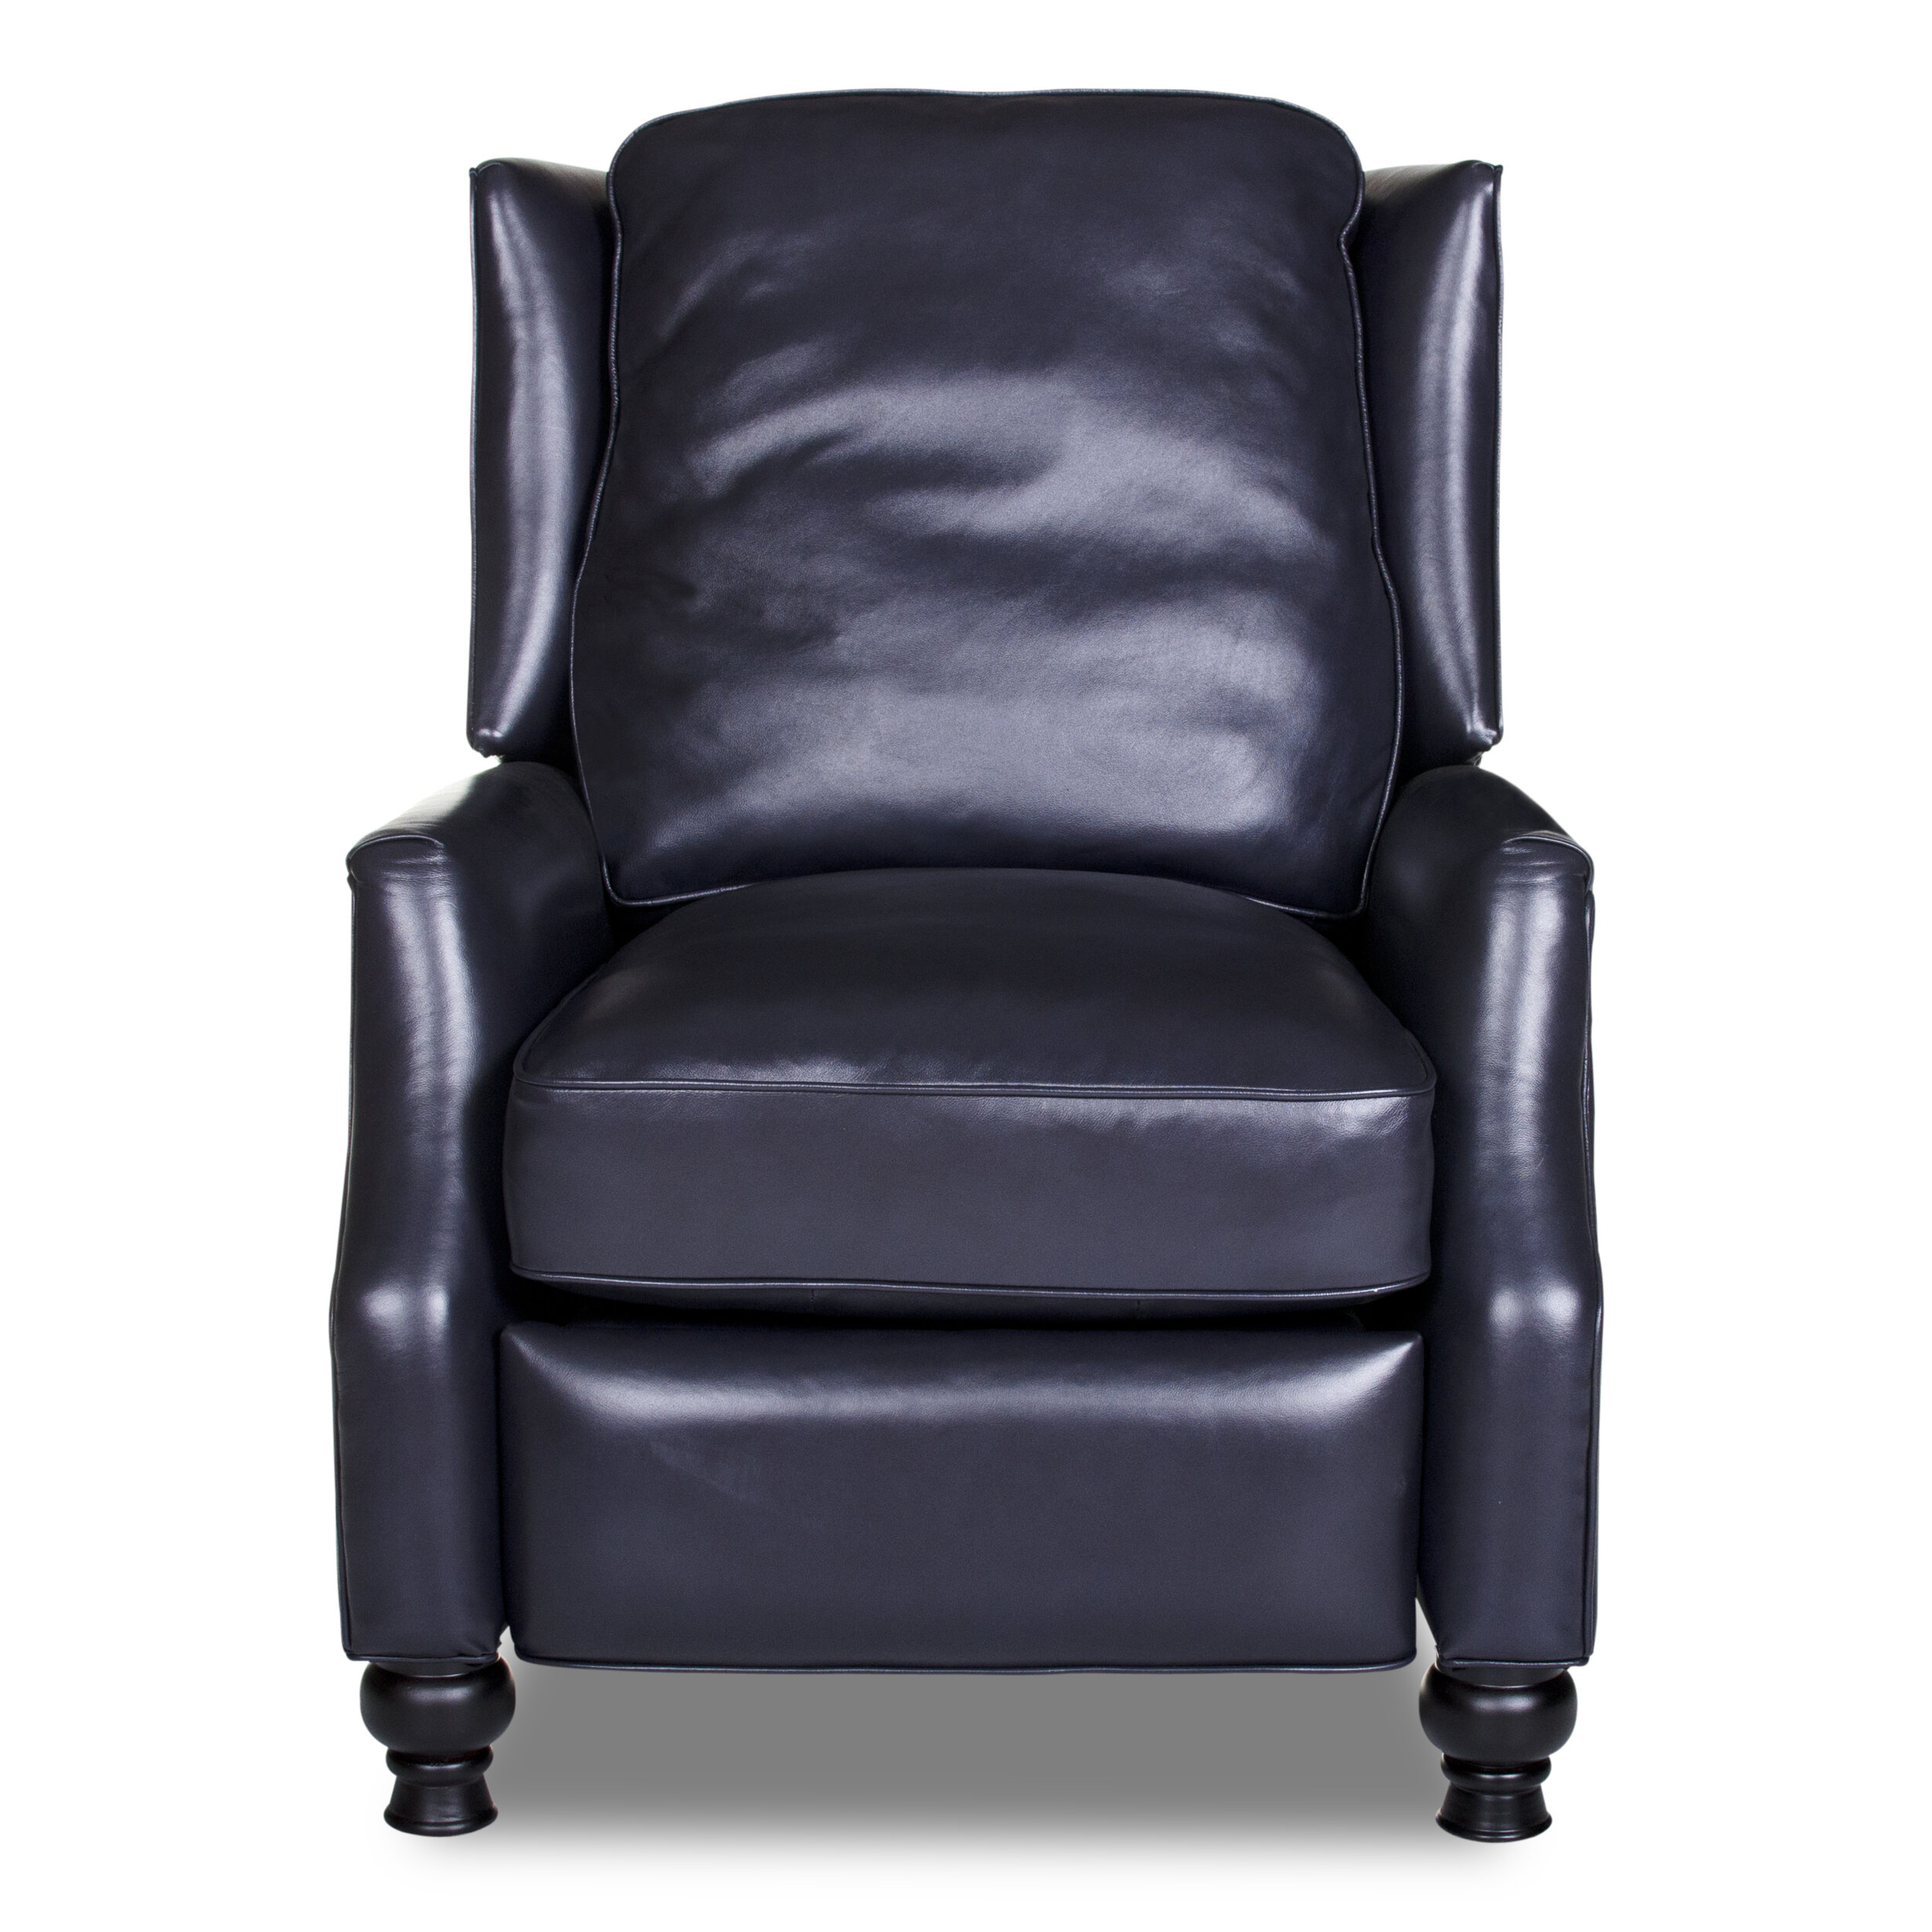 Darby Home Co Ignatius Leather Recliner